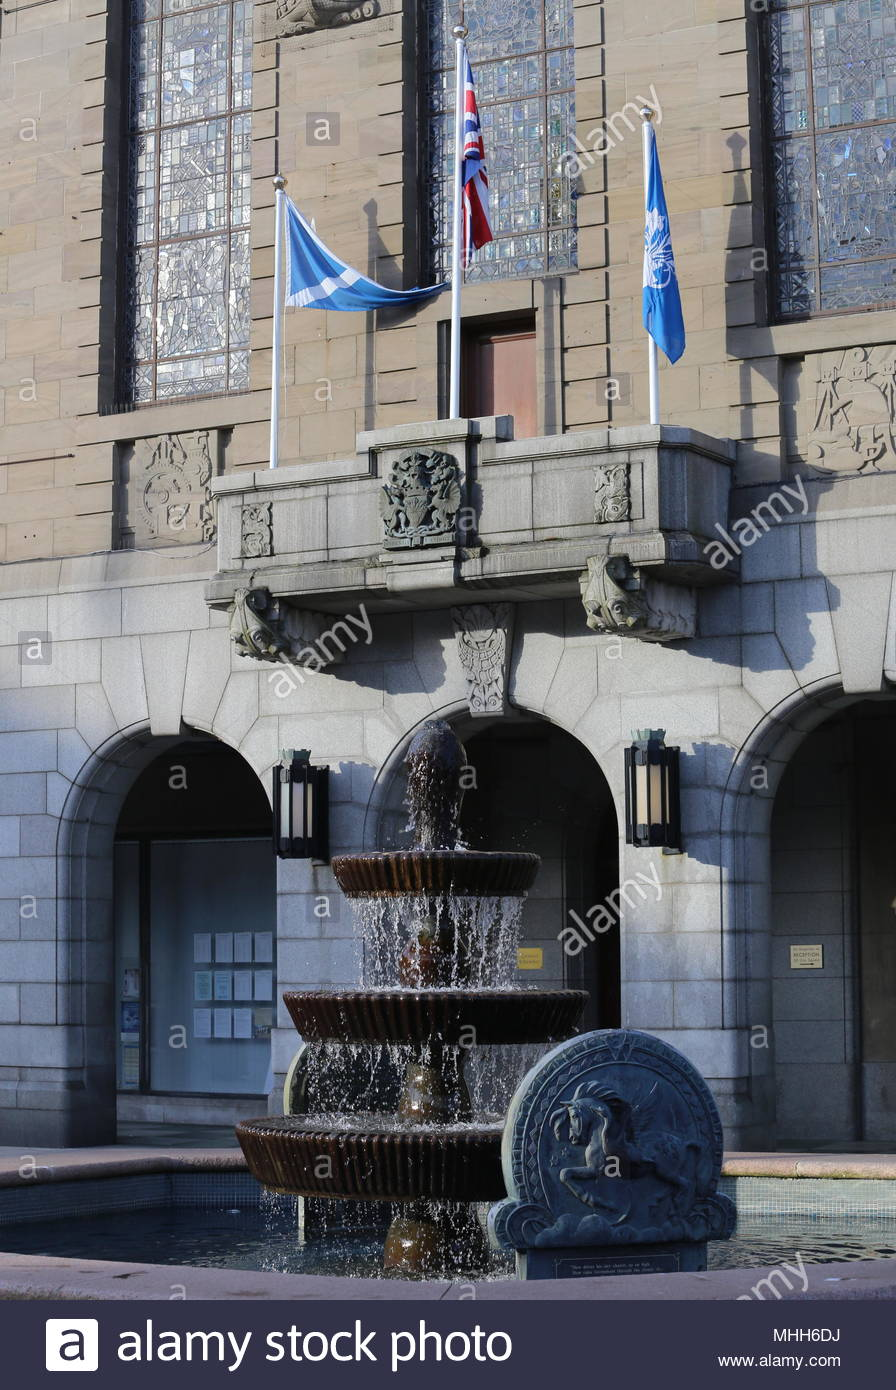 Fountain and balcony of The Chambers of Commerce, City Square Dundee Scotland  April 2018 - Stock Image